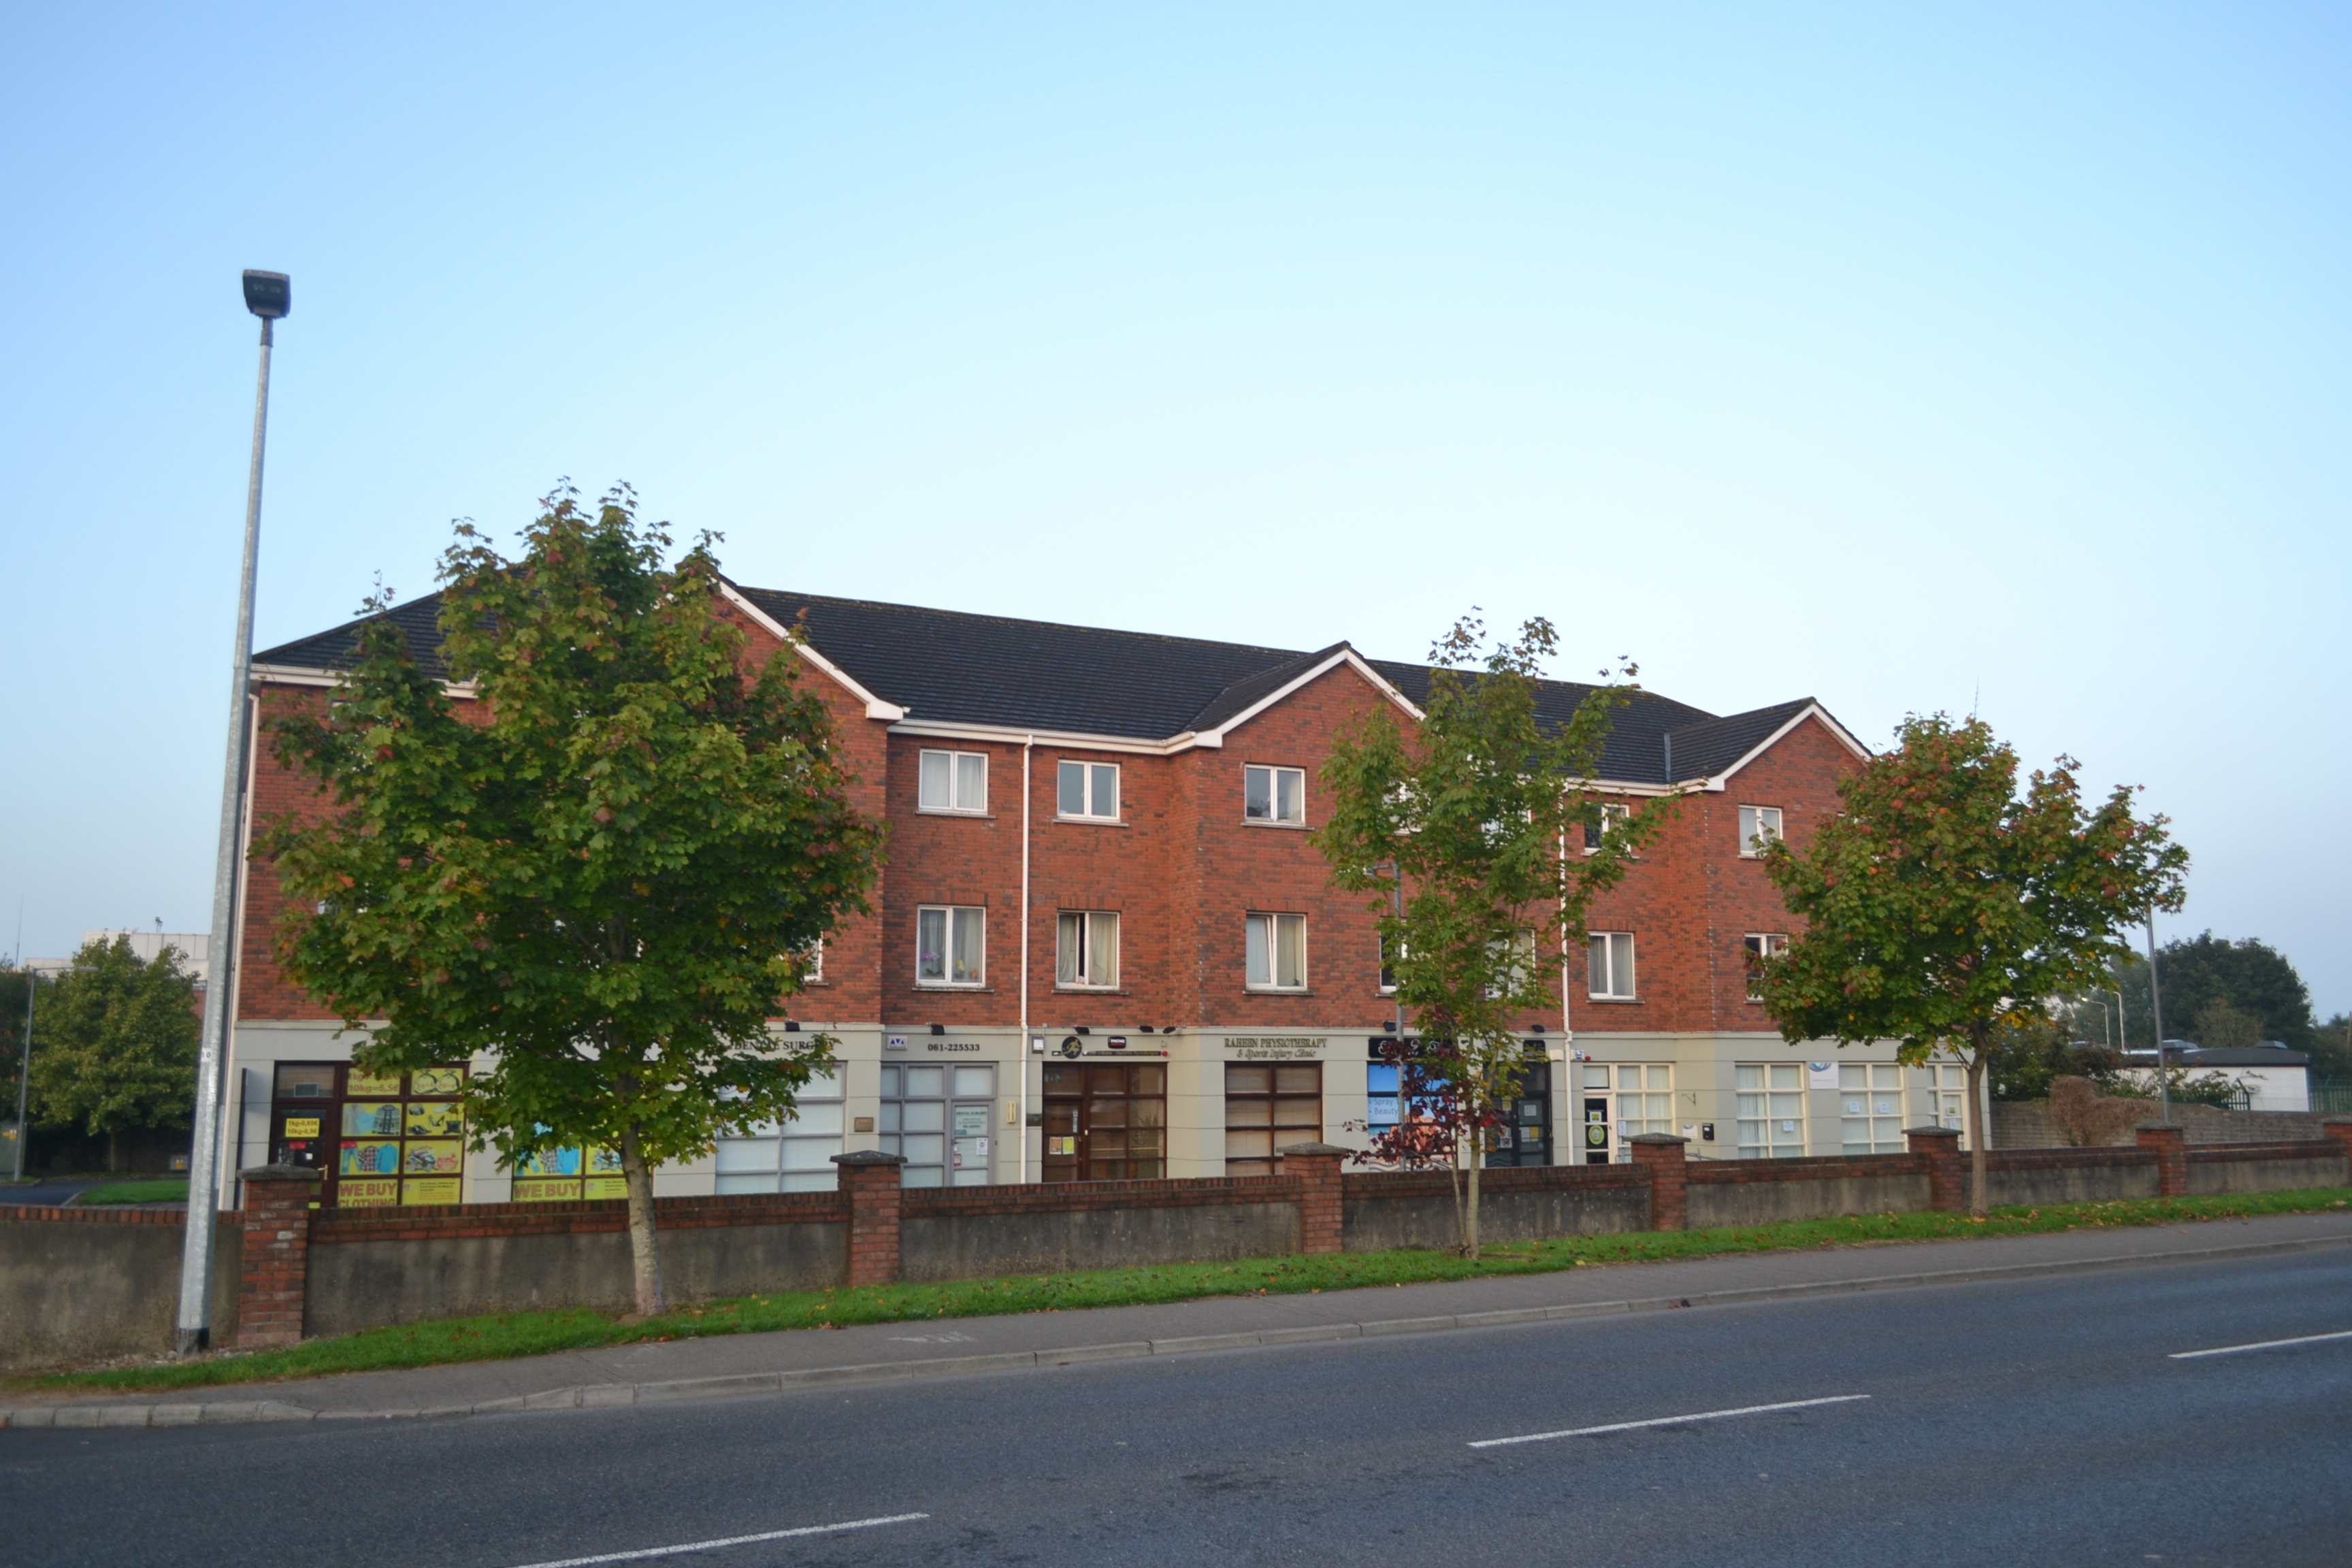 View of the clinic - from road